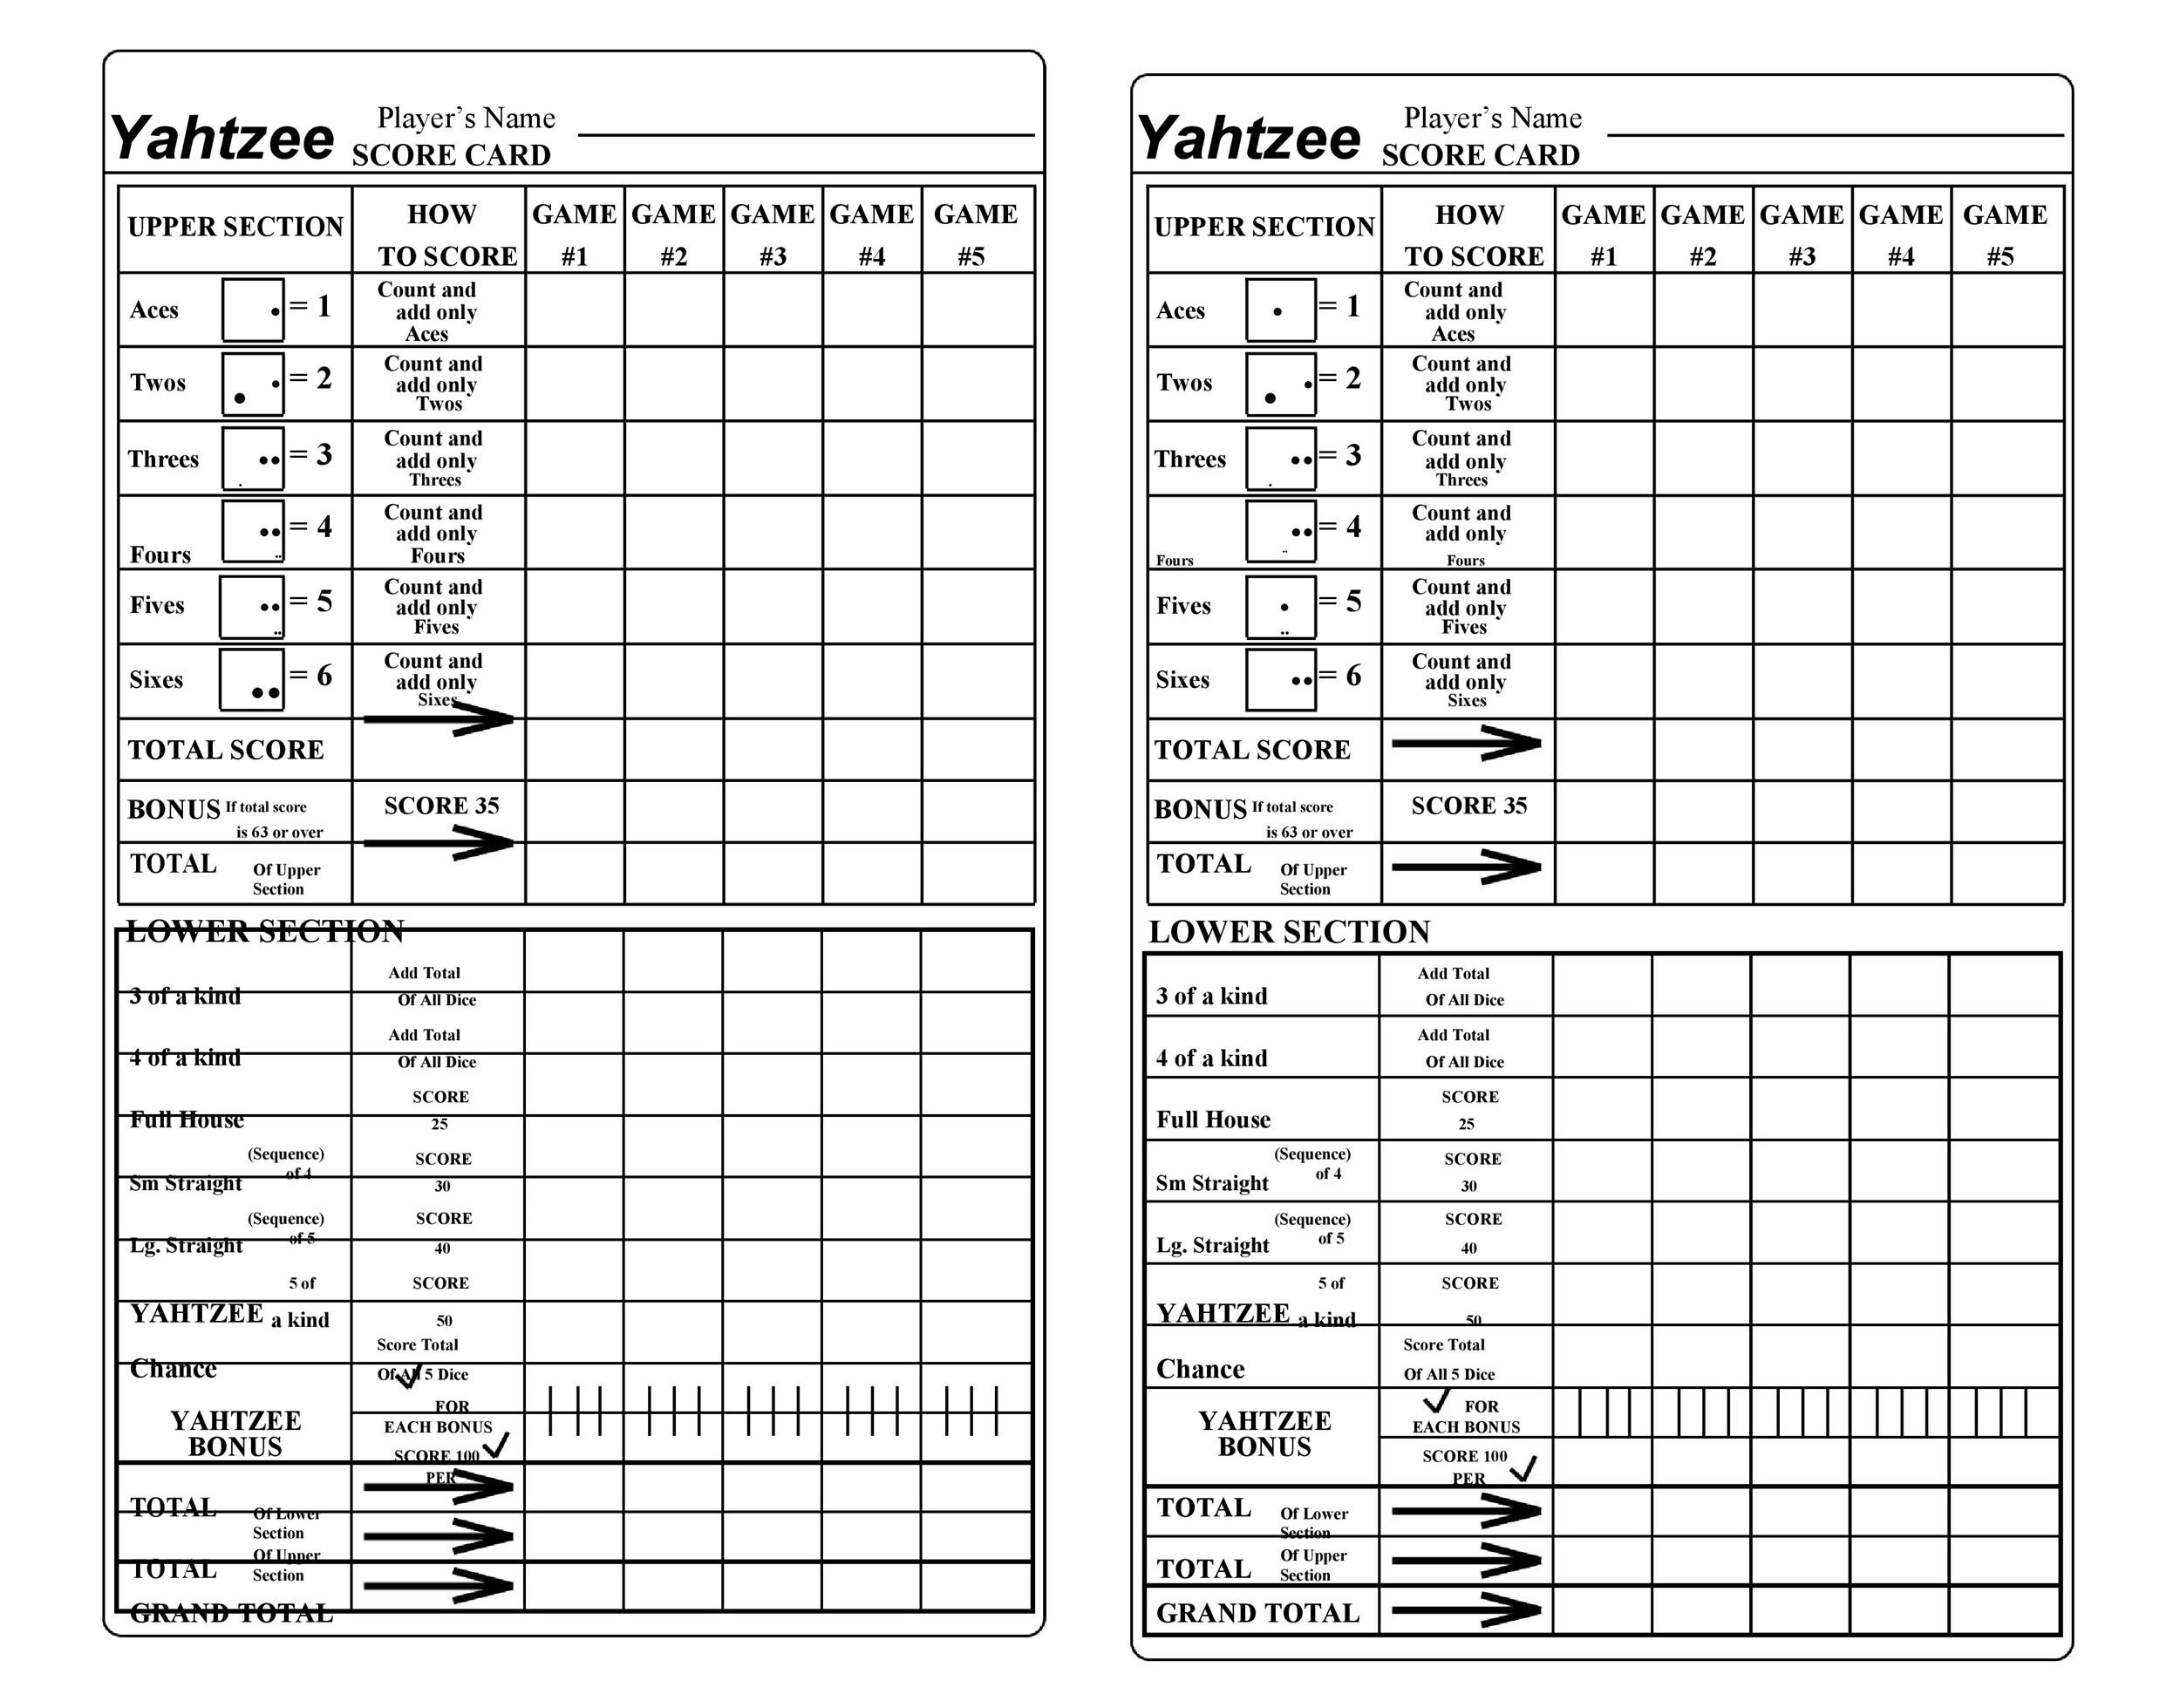 image regarding Yahtzee Score Sheet Printable identified as 28 Printable Yahtzee Ranking Sheets Playing cards (101% Free of charge) ᐅ